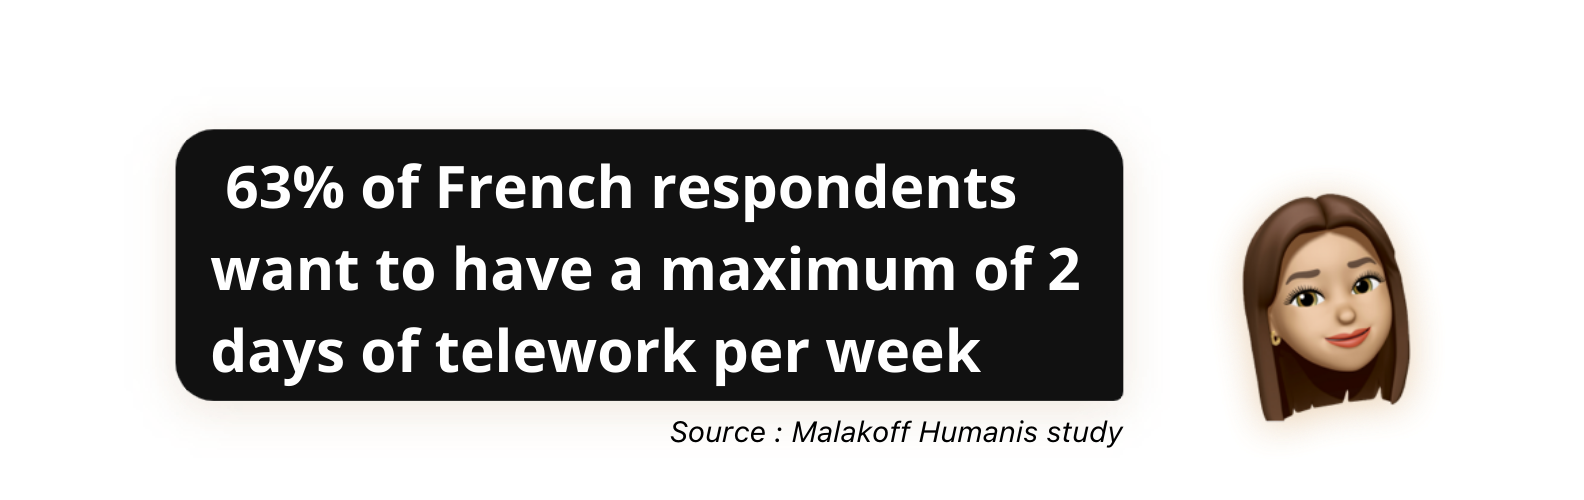 63% of French respondents want to have a maximum of 2 days of telework per week, says the Malakoff Humanis study